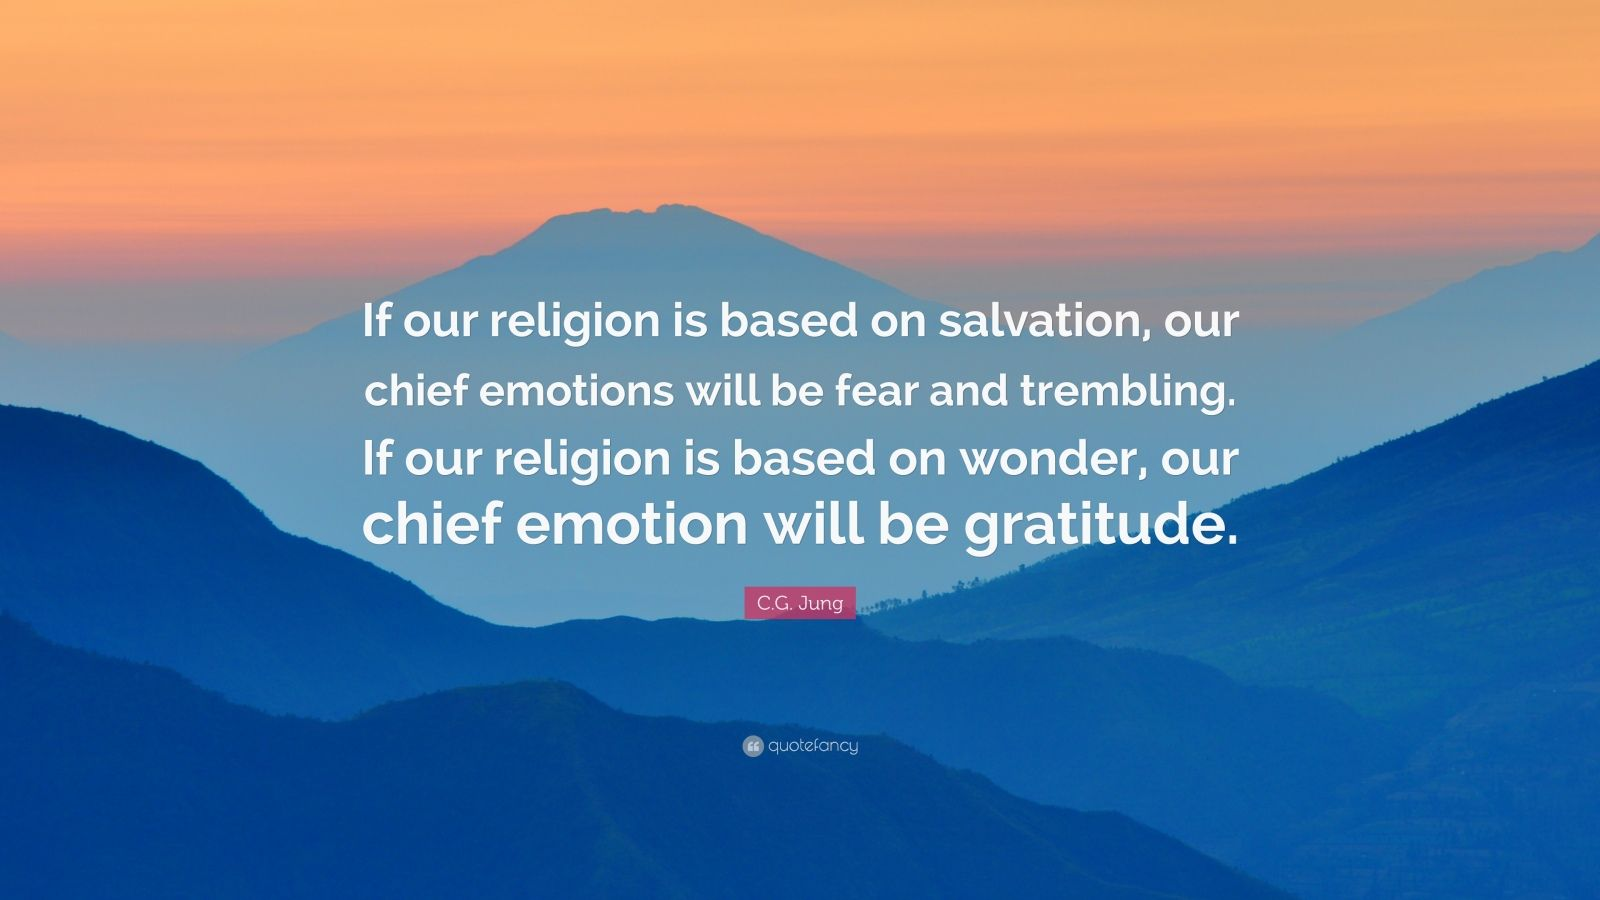 """C.G. Jung Quote: """"If our religion is based on salvation, our chief emotions will be fear and trembling. If our religion is based on wonder, our chief emotion will be gratitude."""""""